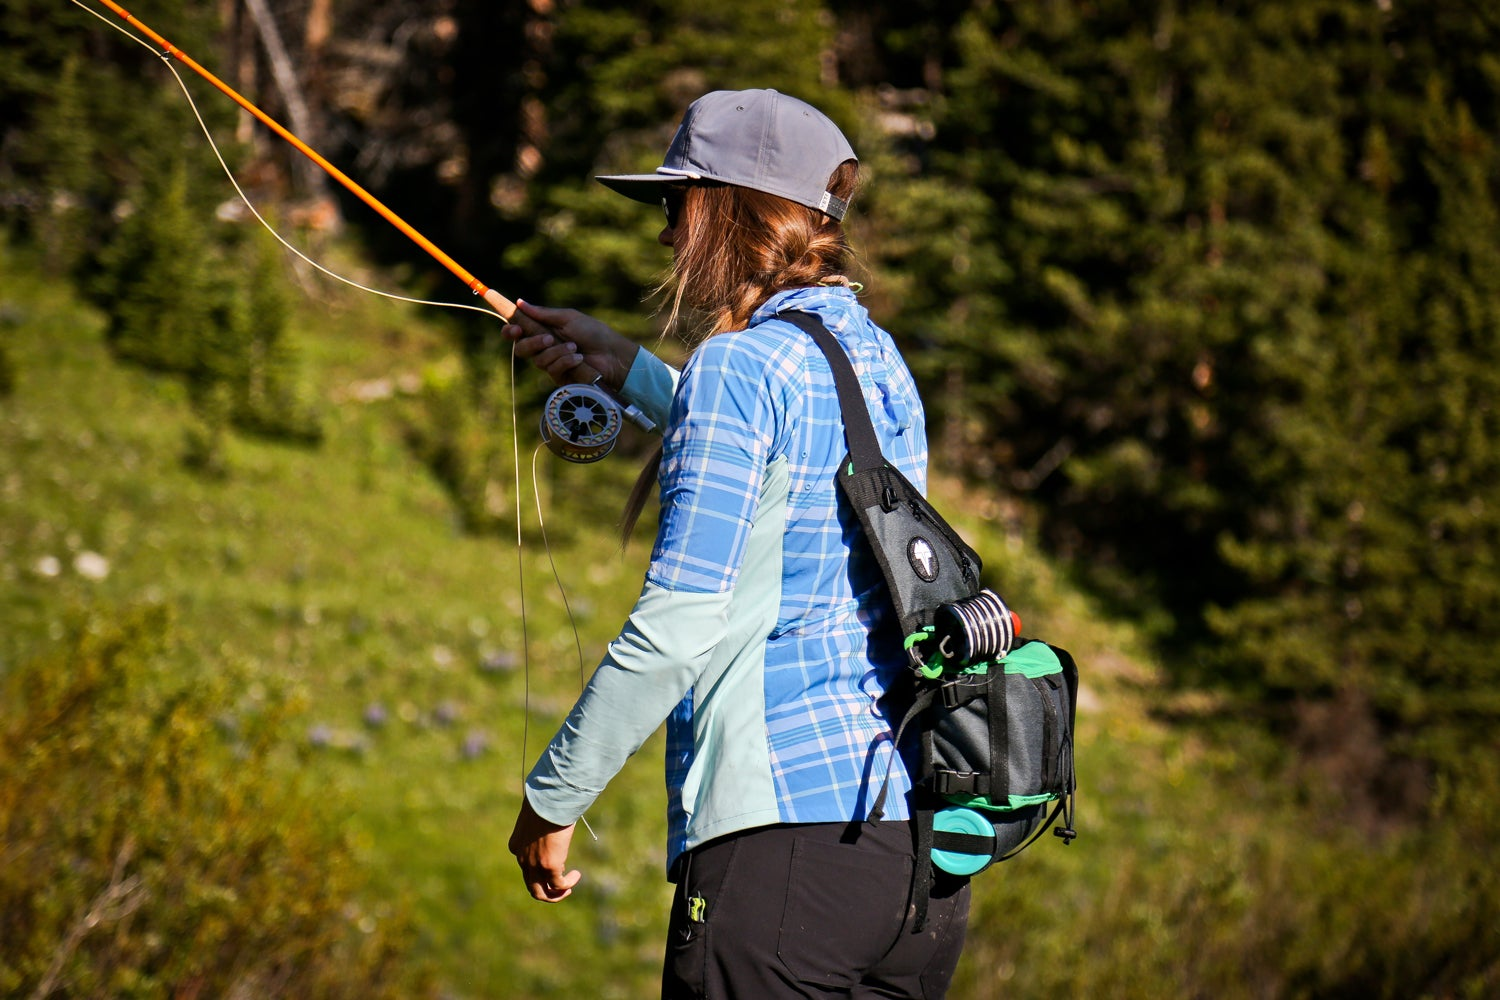 Women's Fishing Gear: Six Top New Products for 2018